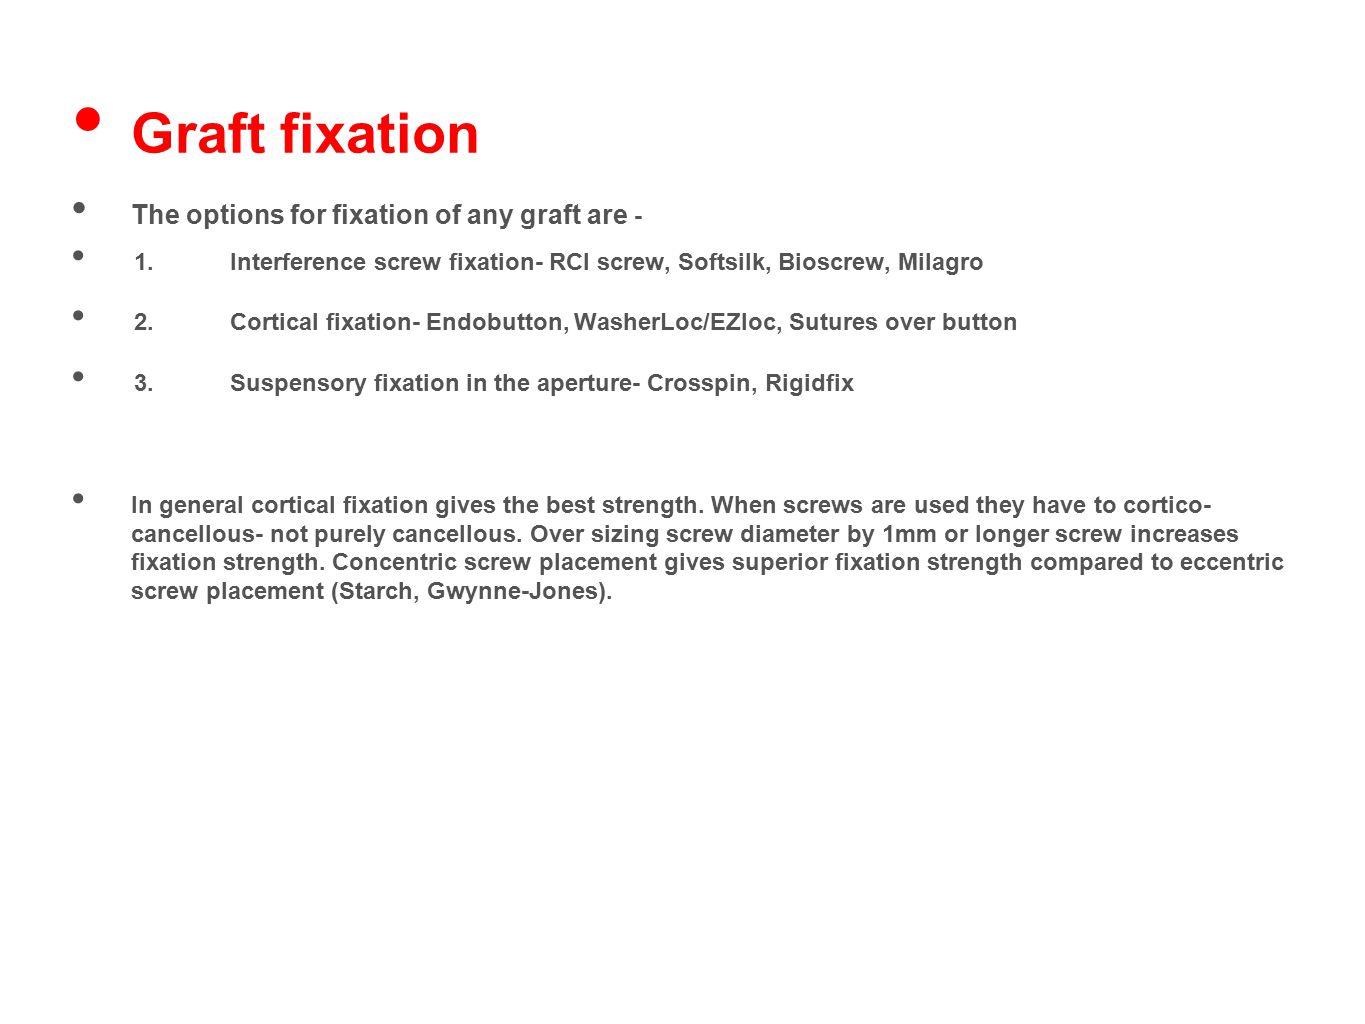 Graft fixation The options for fixation of any graft are -